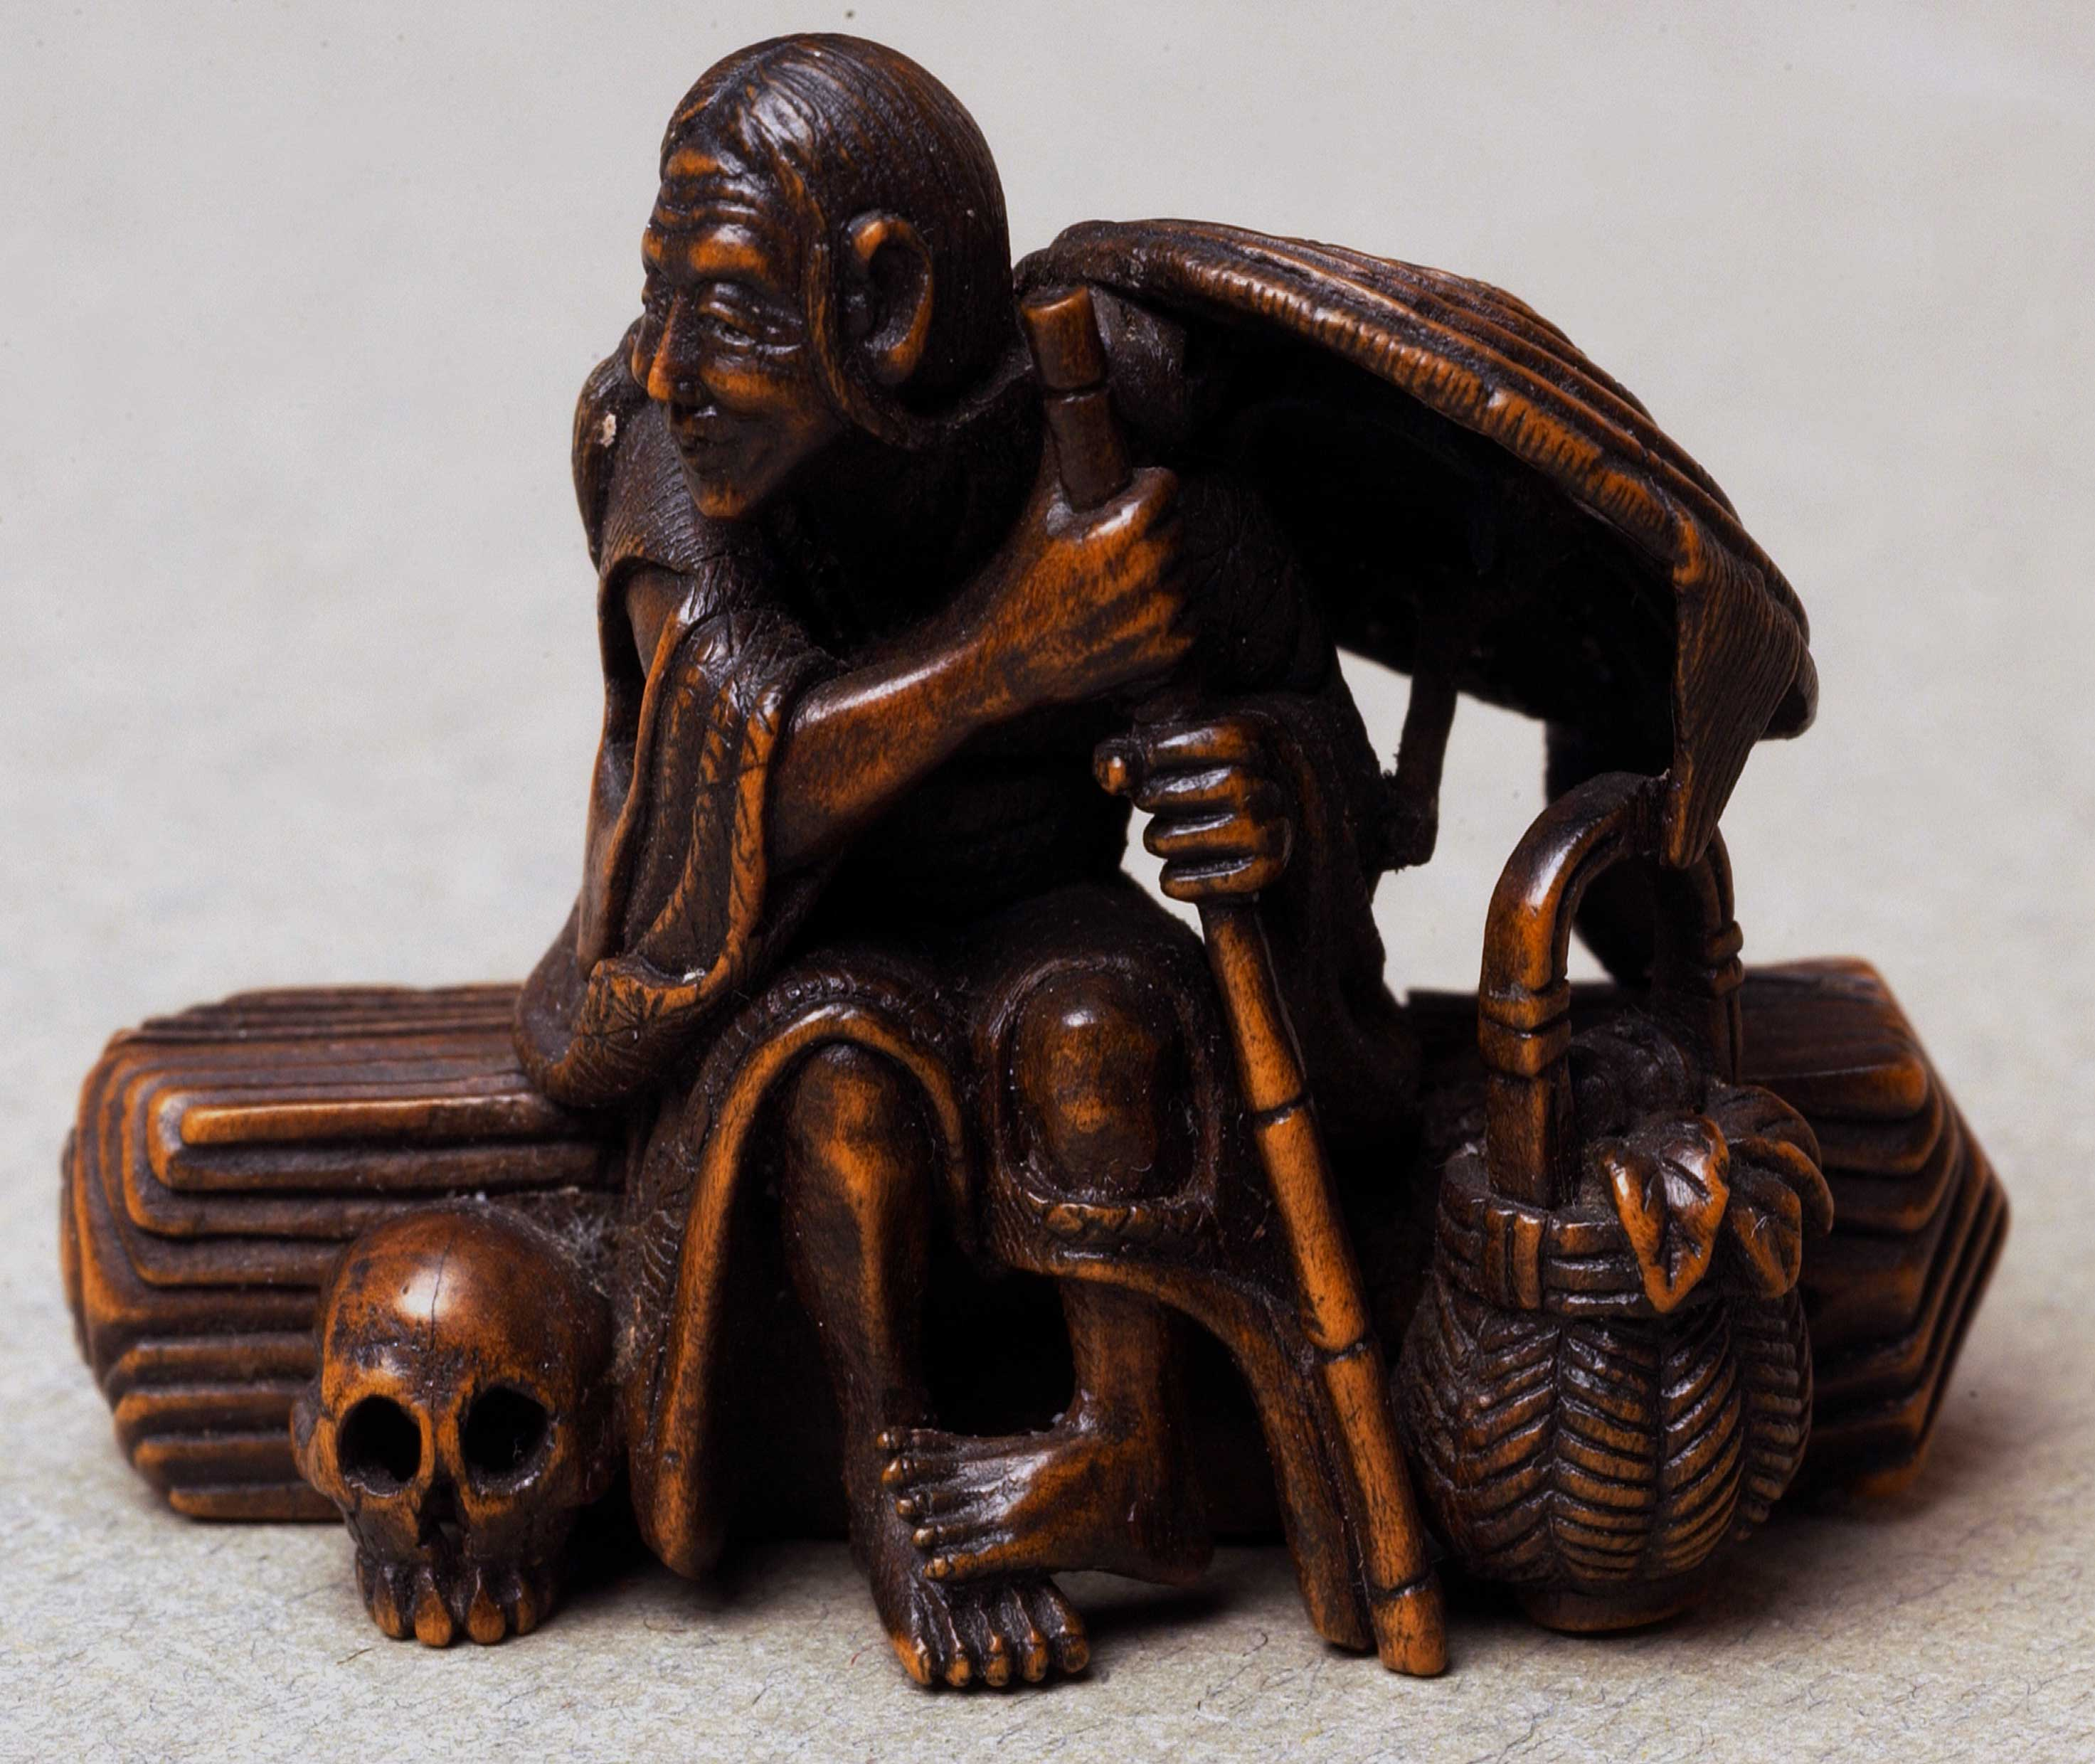 Netsuke depicting a seated man